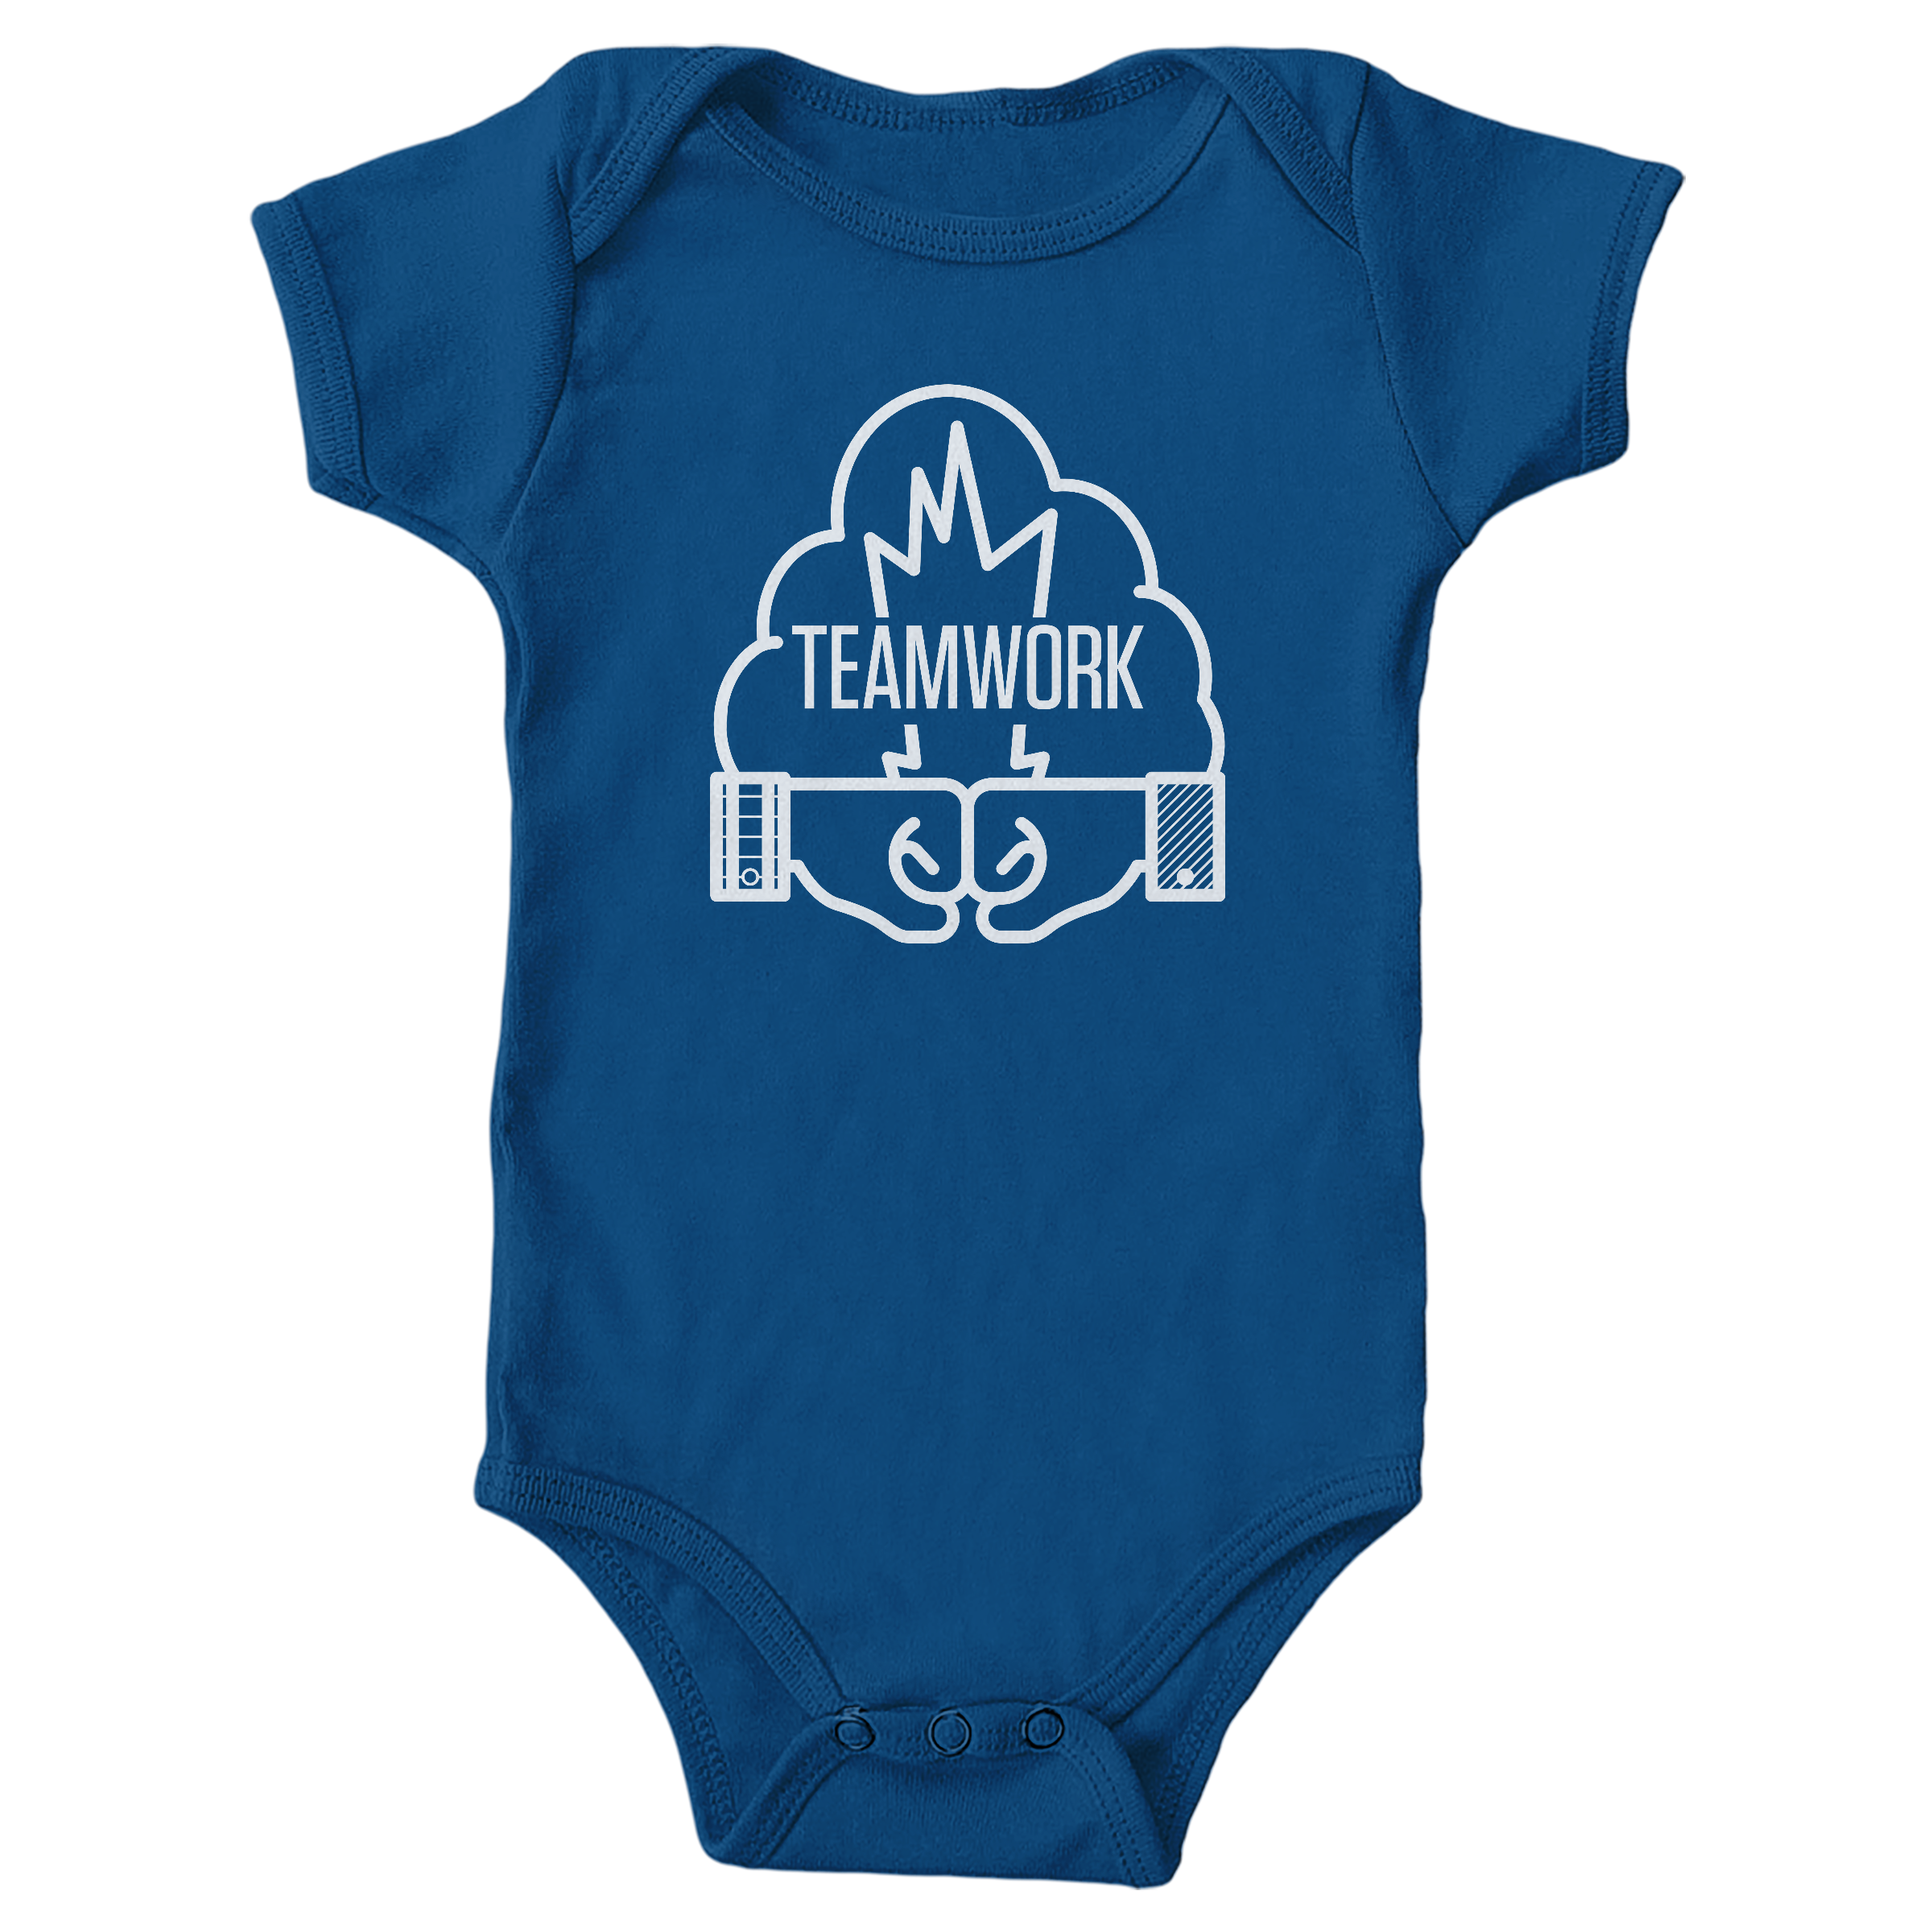 TEAMWORK Royal (Onesie)